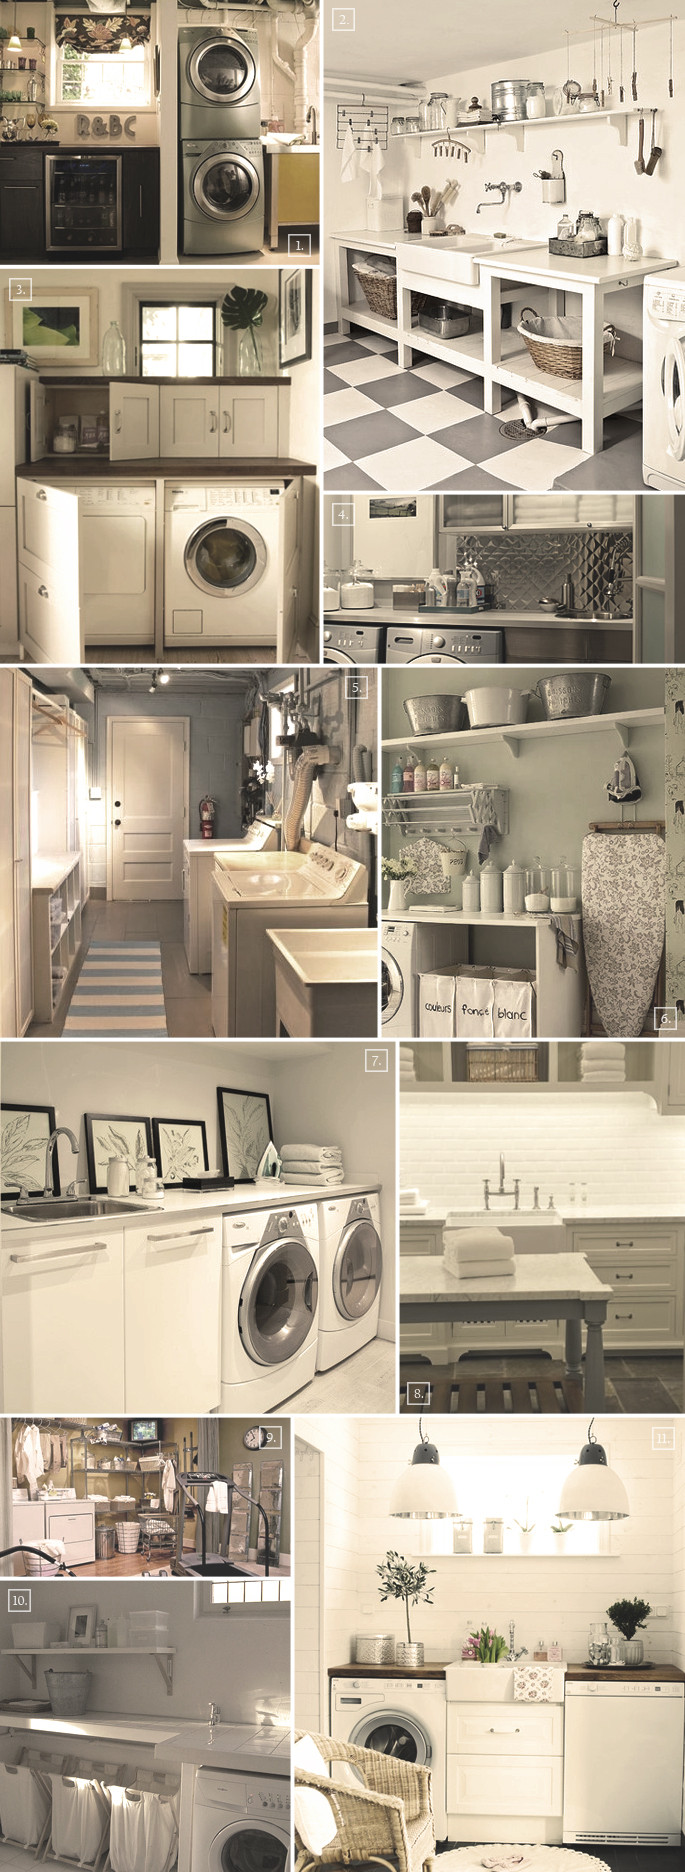 Best ideas about Basement Laundry Room Ideas . Save or Pin Design Ideas For That Perfect Basement Laundry Room Now.